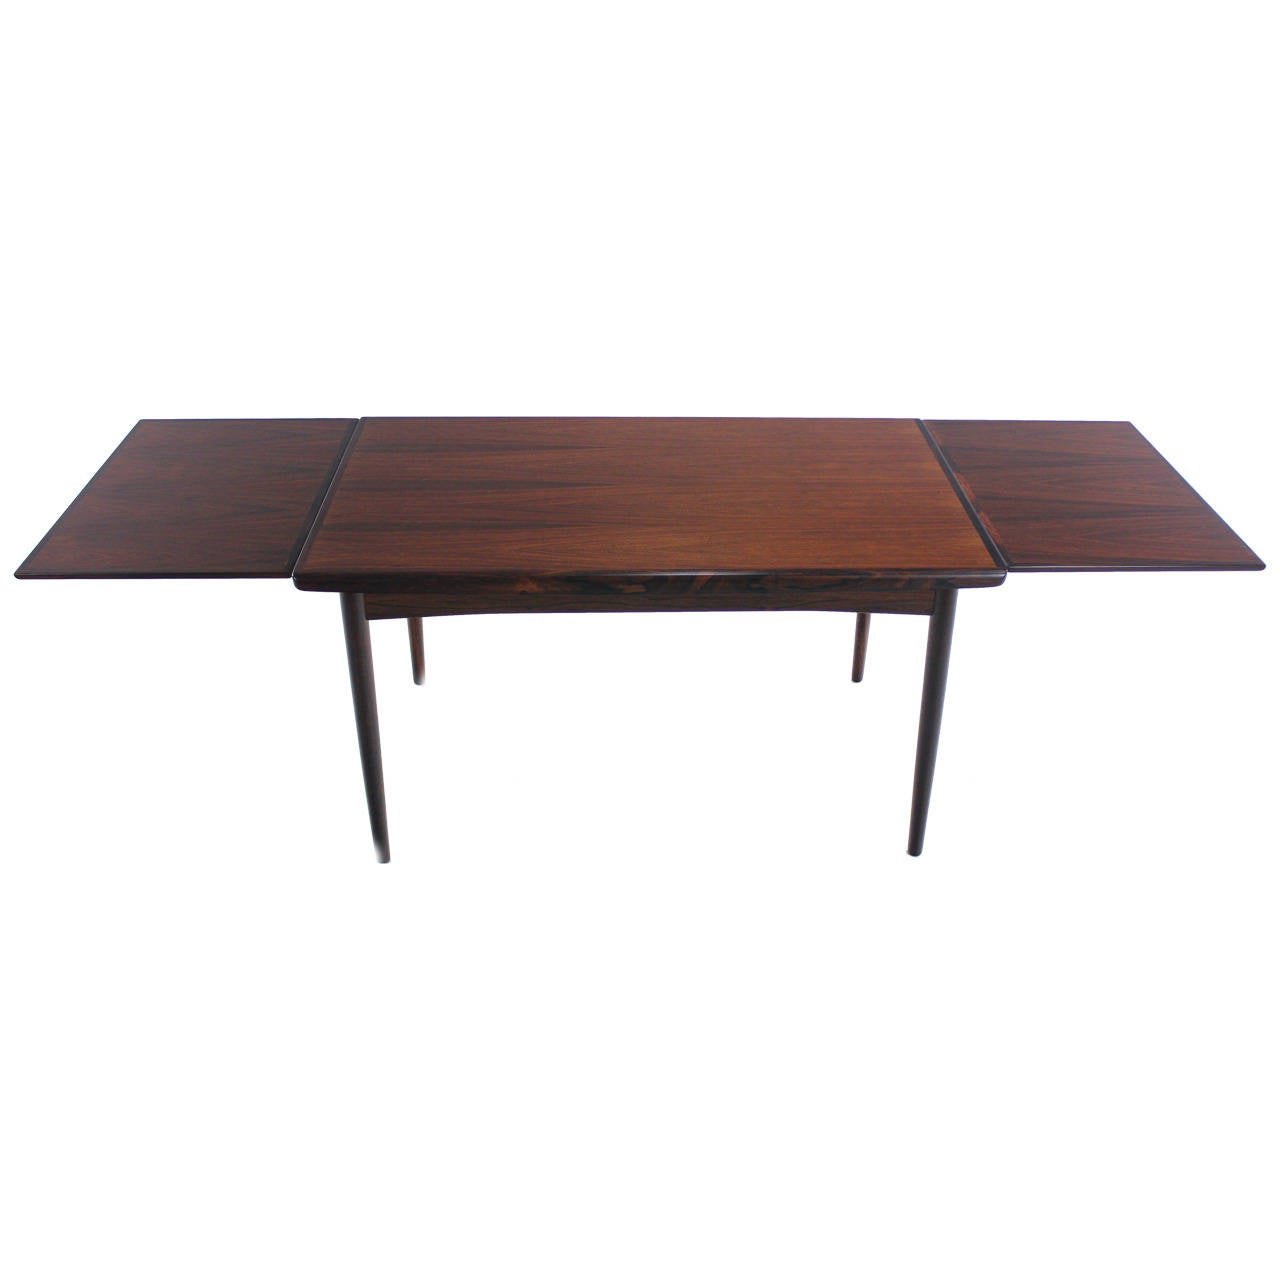 Danish Modern Rosewood Draw Leaf Dining Table At 1stdibs